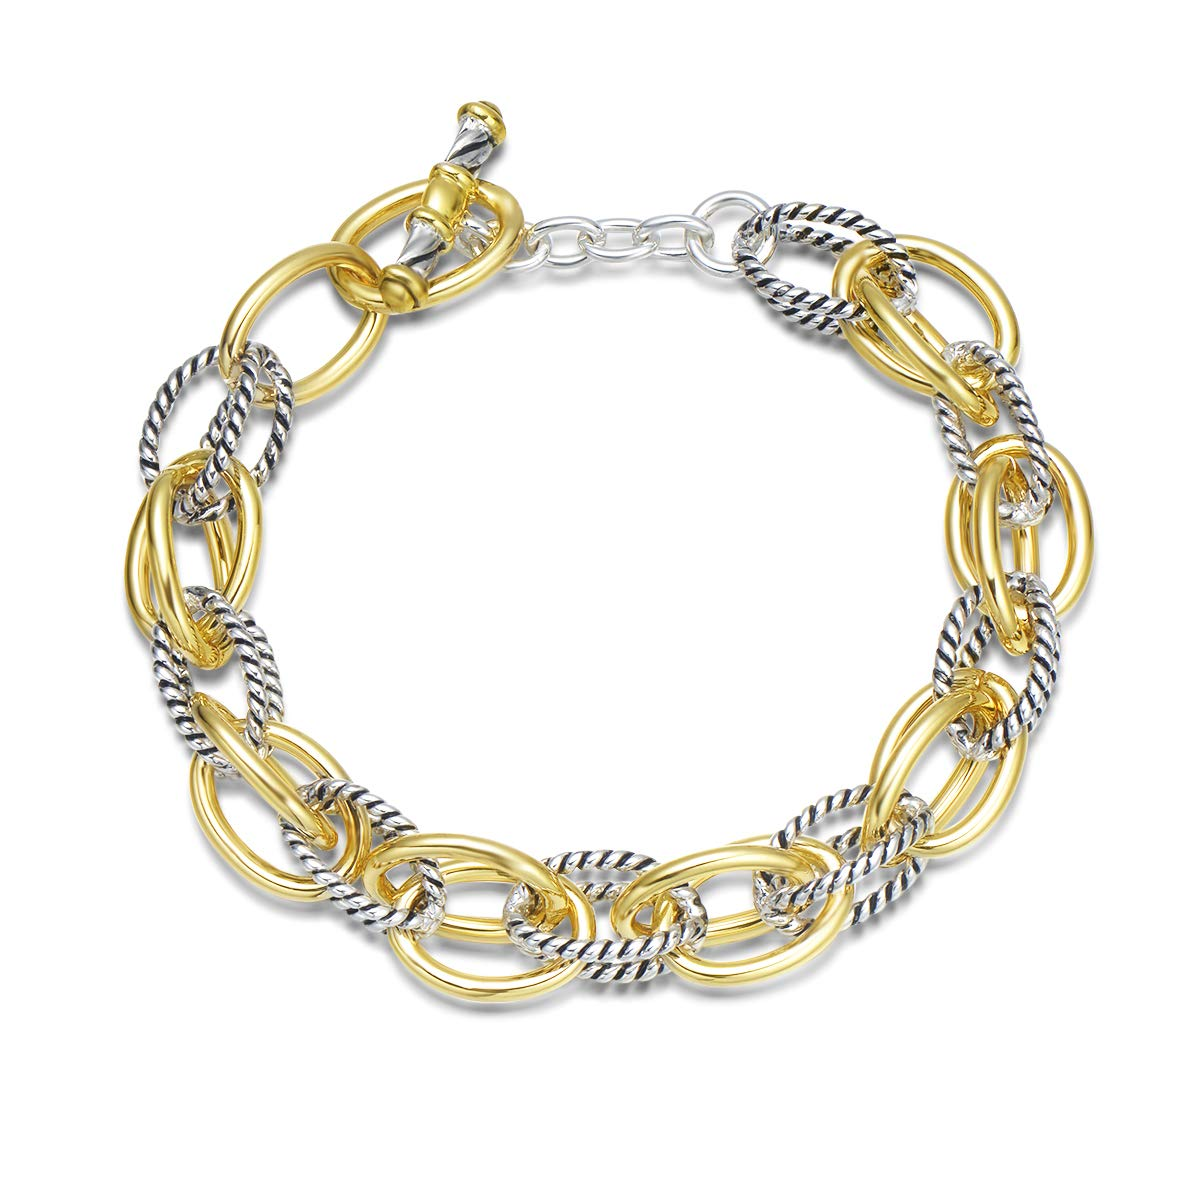 UNY Bracelet Designer Brand Inspired Antique Women Jewelry Double Cable Link Wire Vintage Valentine (2 Tone) by UNY